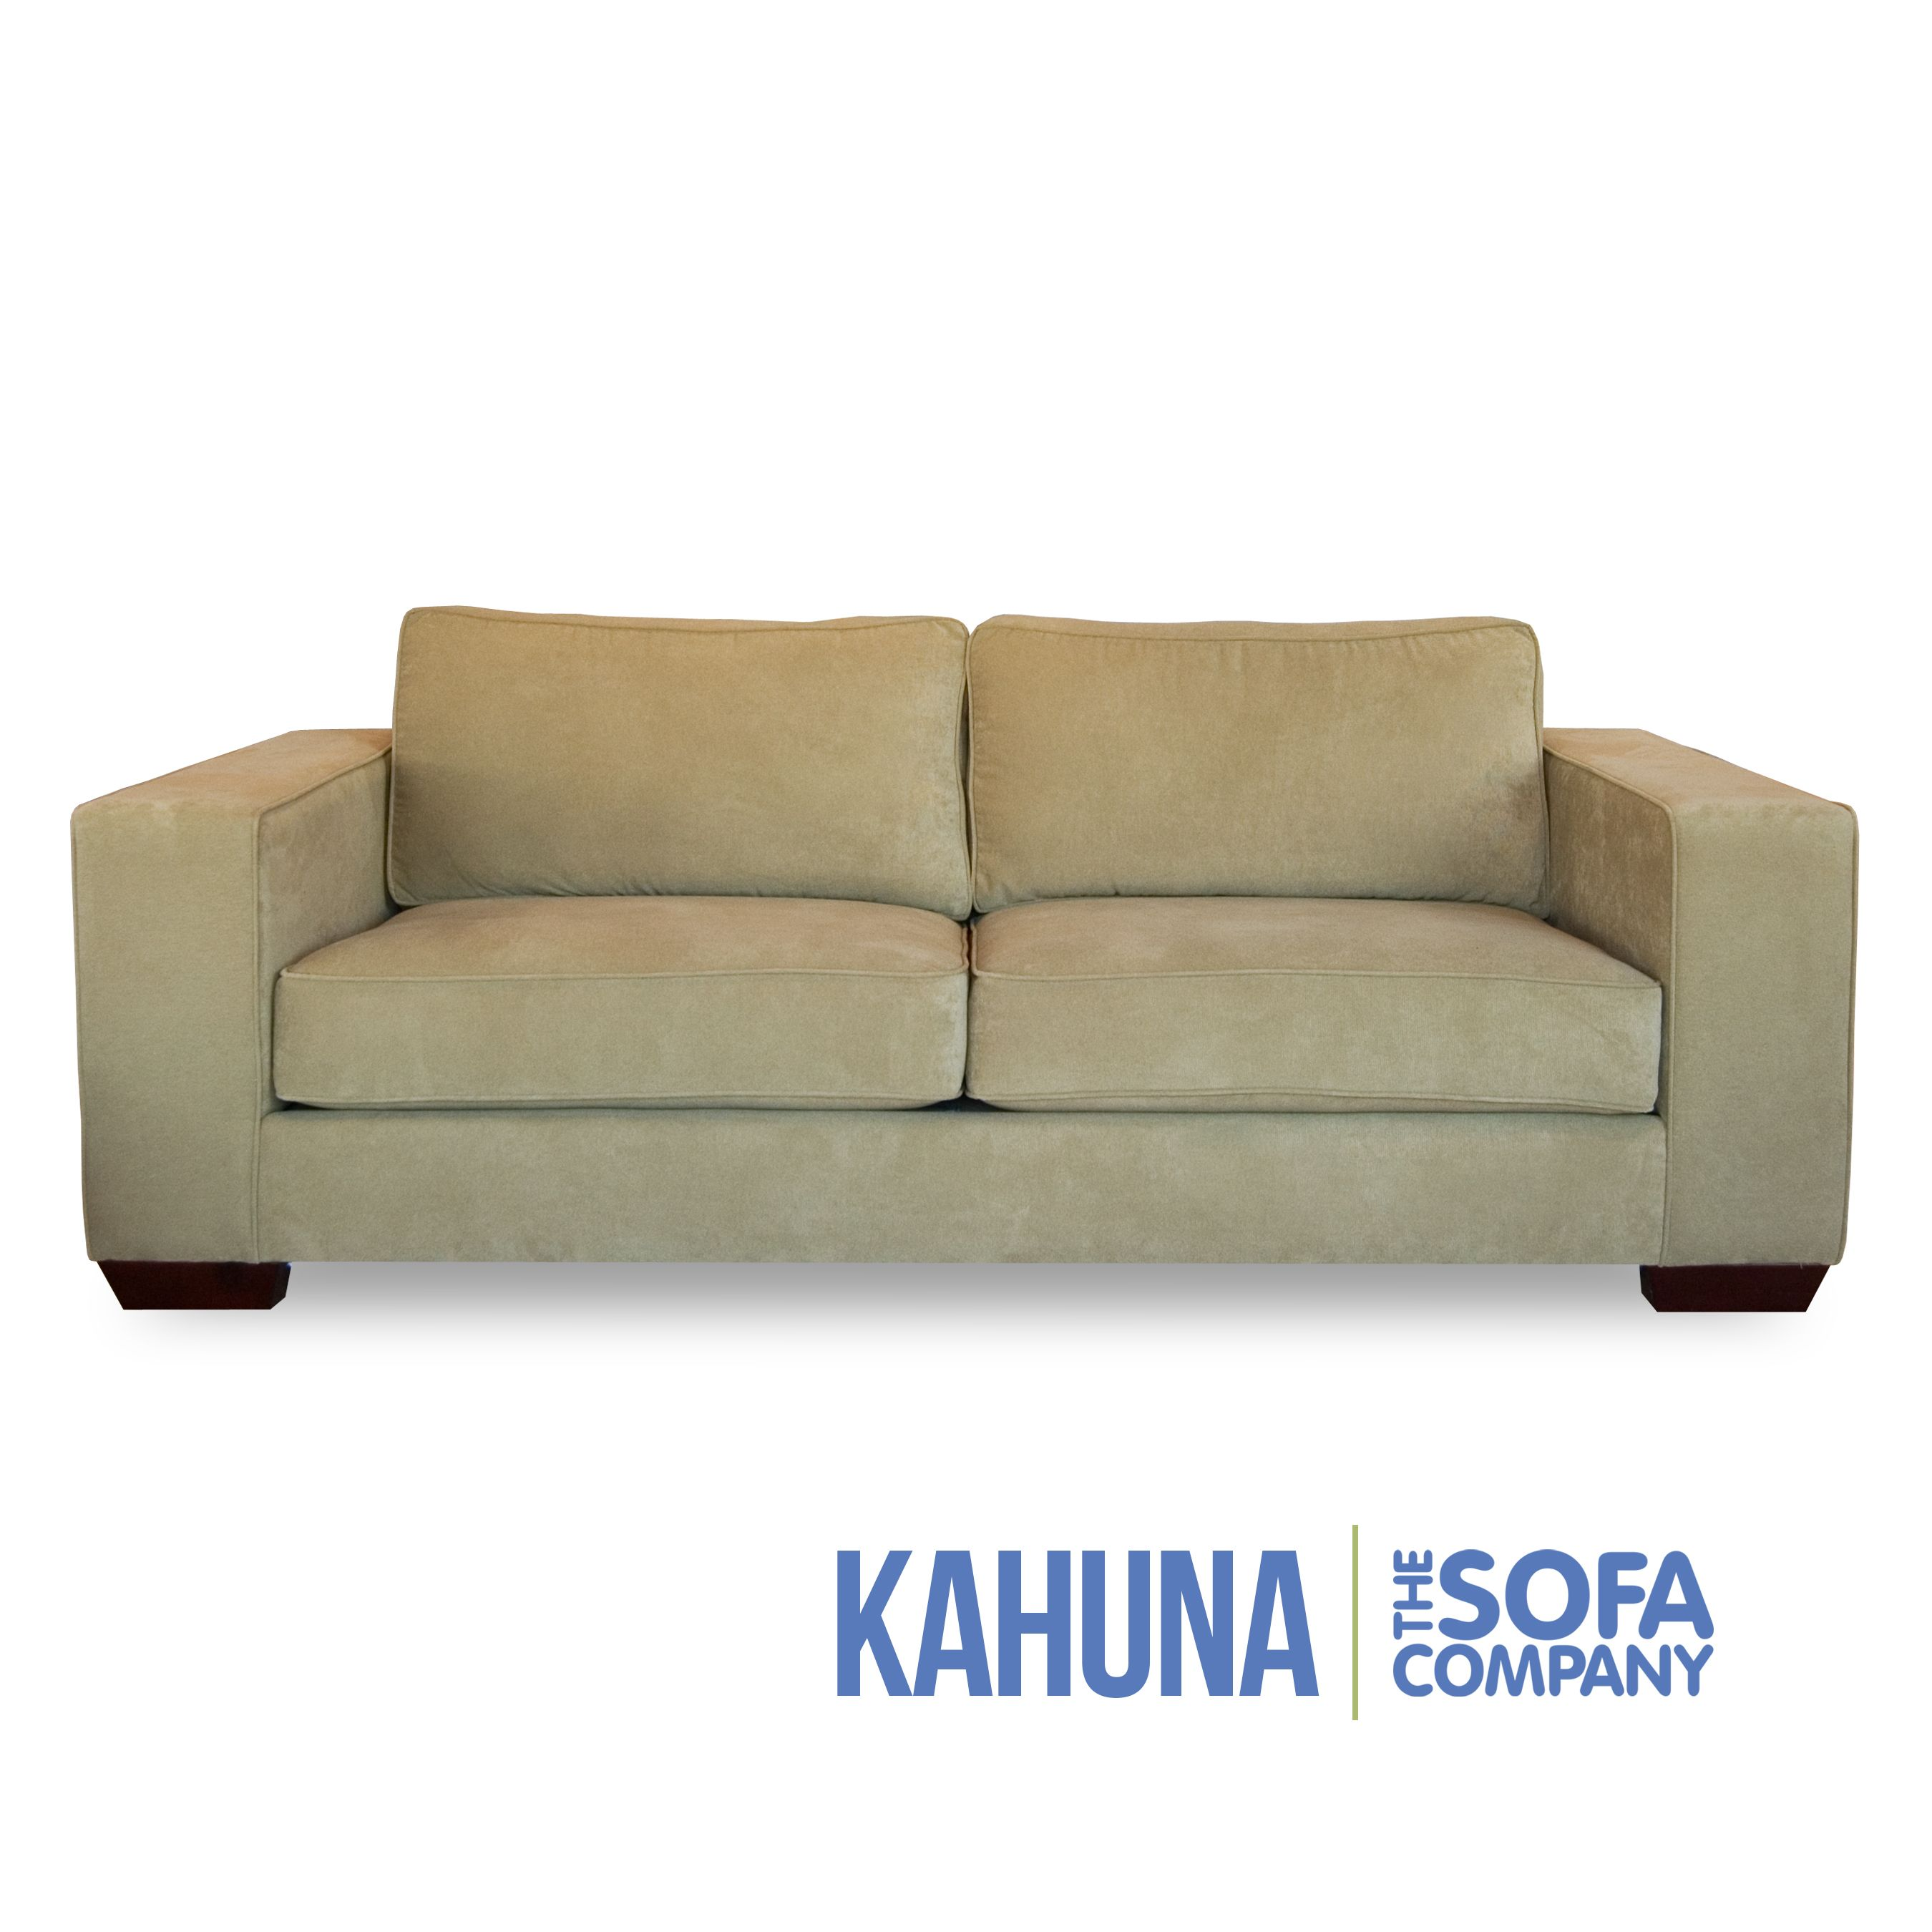 Bentley Sofas With Images Sofa Styling Custom Sofa Sofa Company